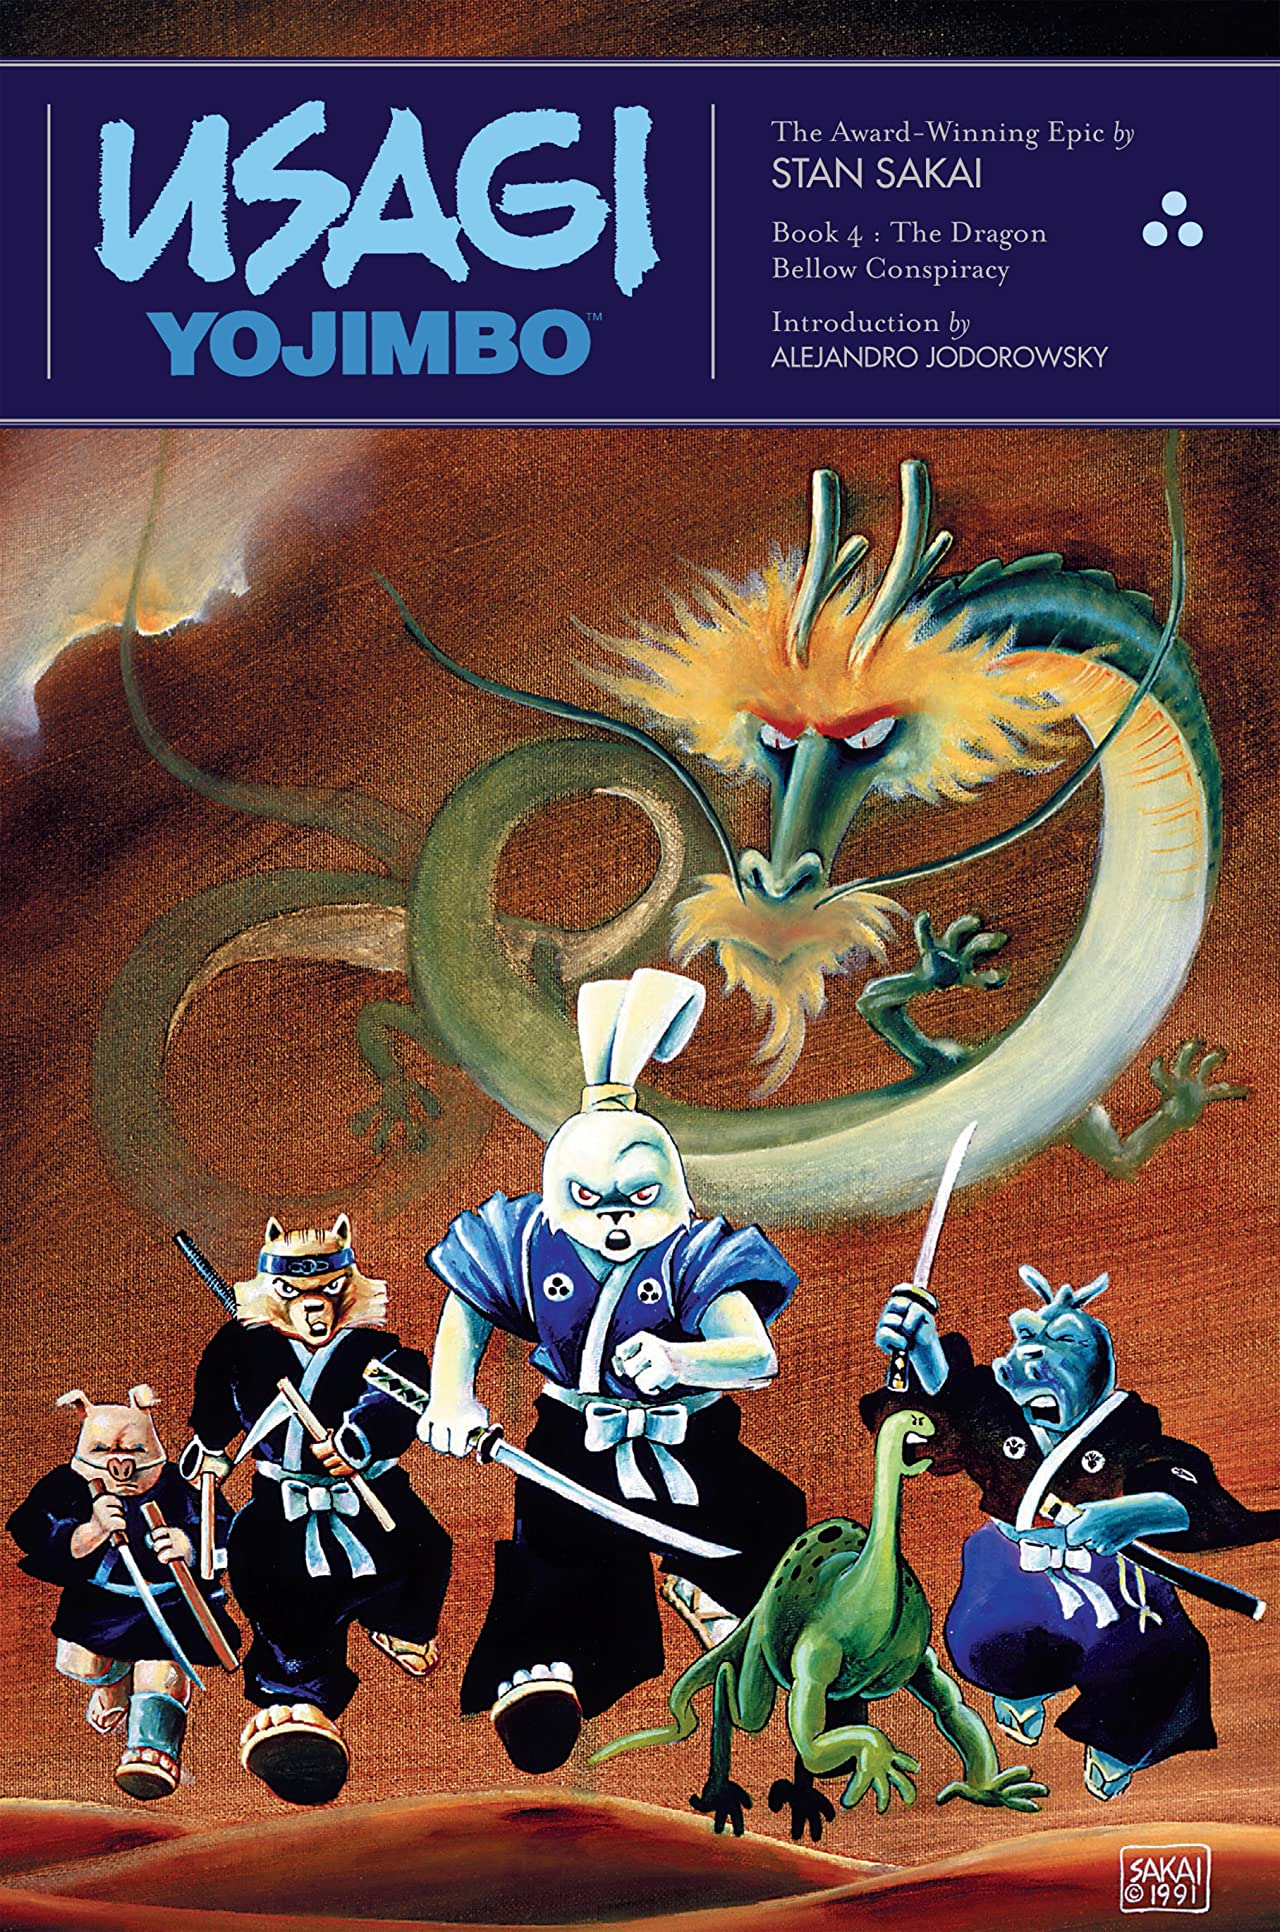 Usagi Yojimbo: Book 4: The Dragon Bellow Conspiracy